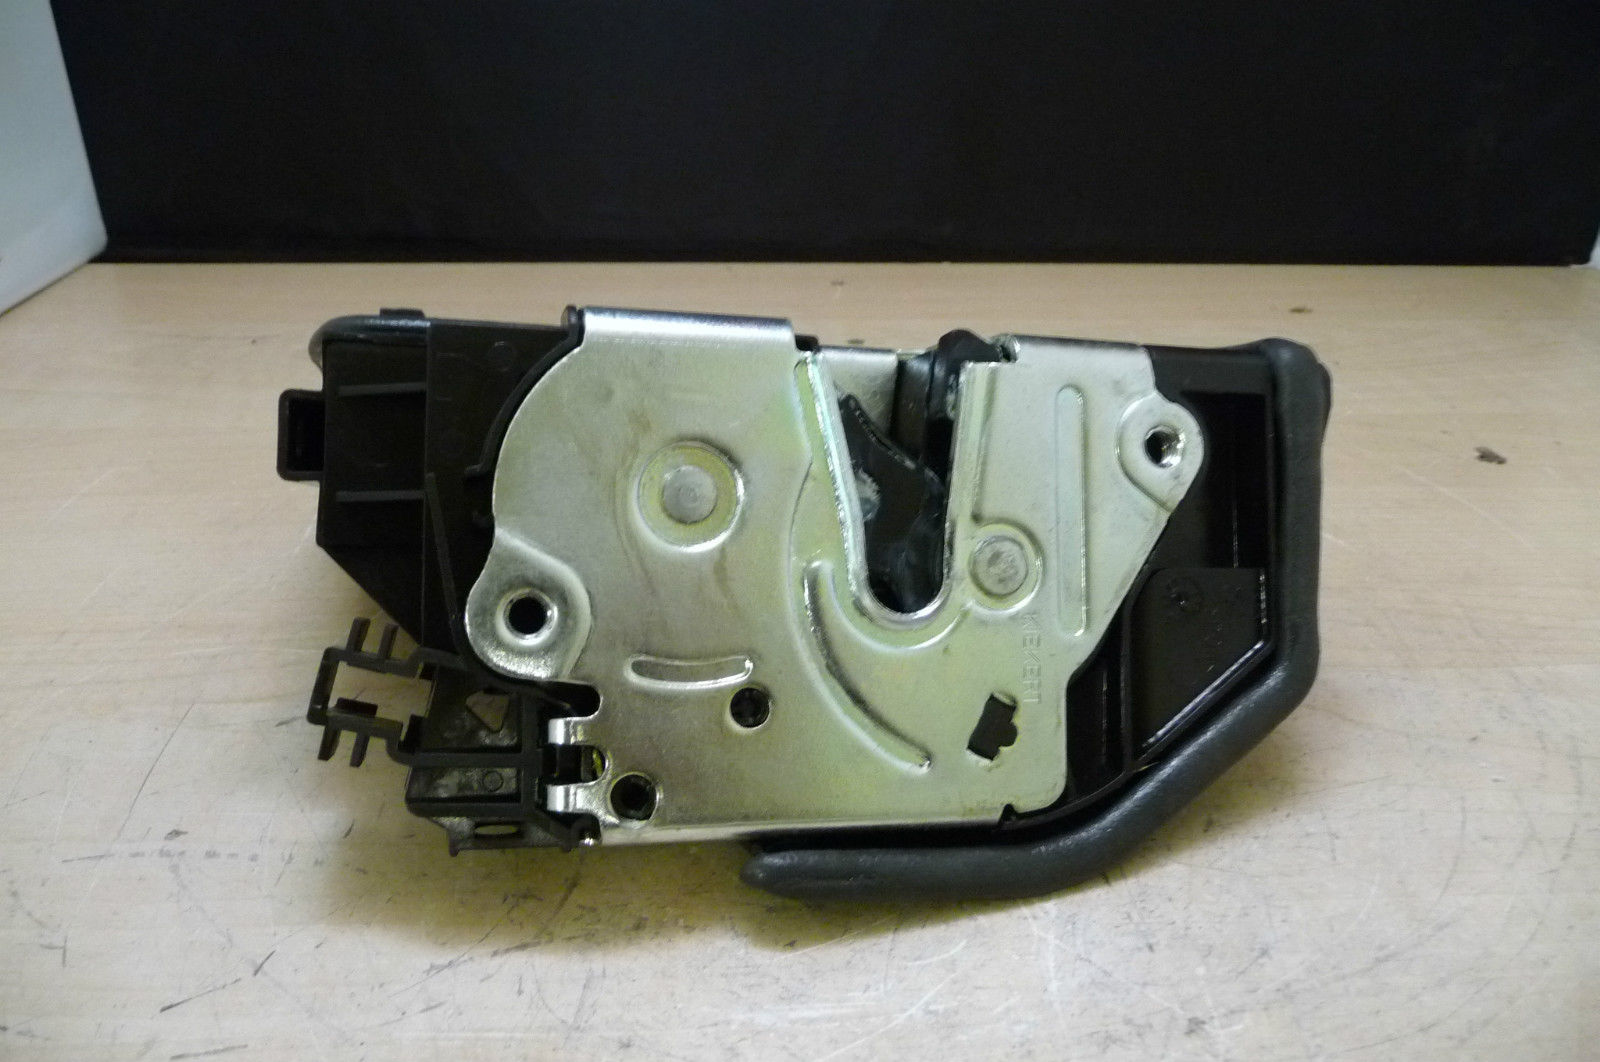 BMW 1 3 5 6 7 Series X3 X5 X6 Z4 Door Lock system Front Right 51217202146 OEM OE